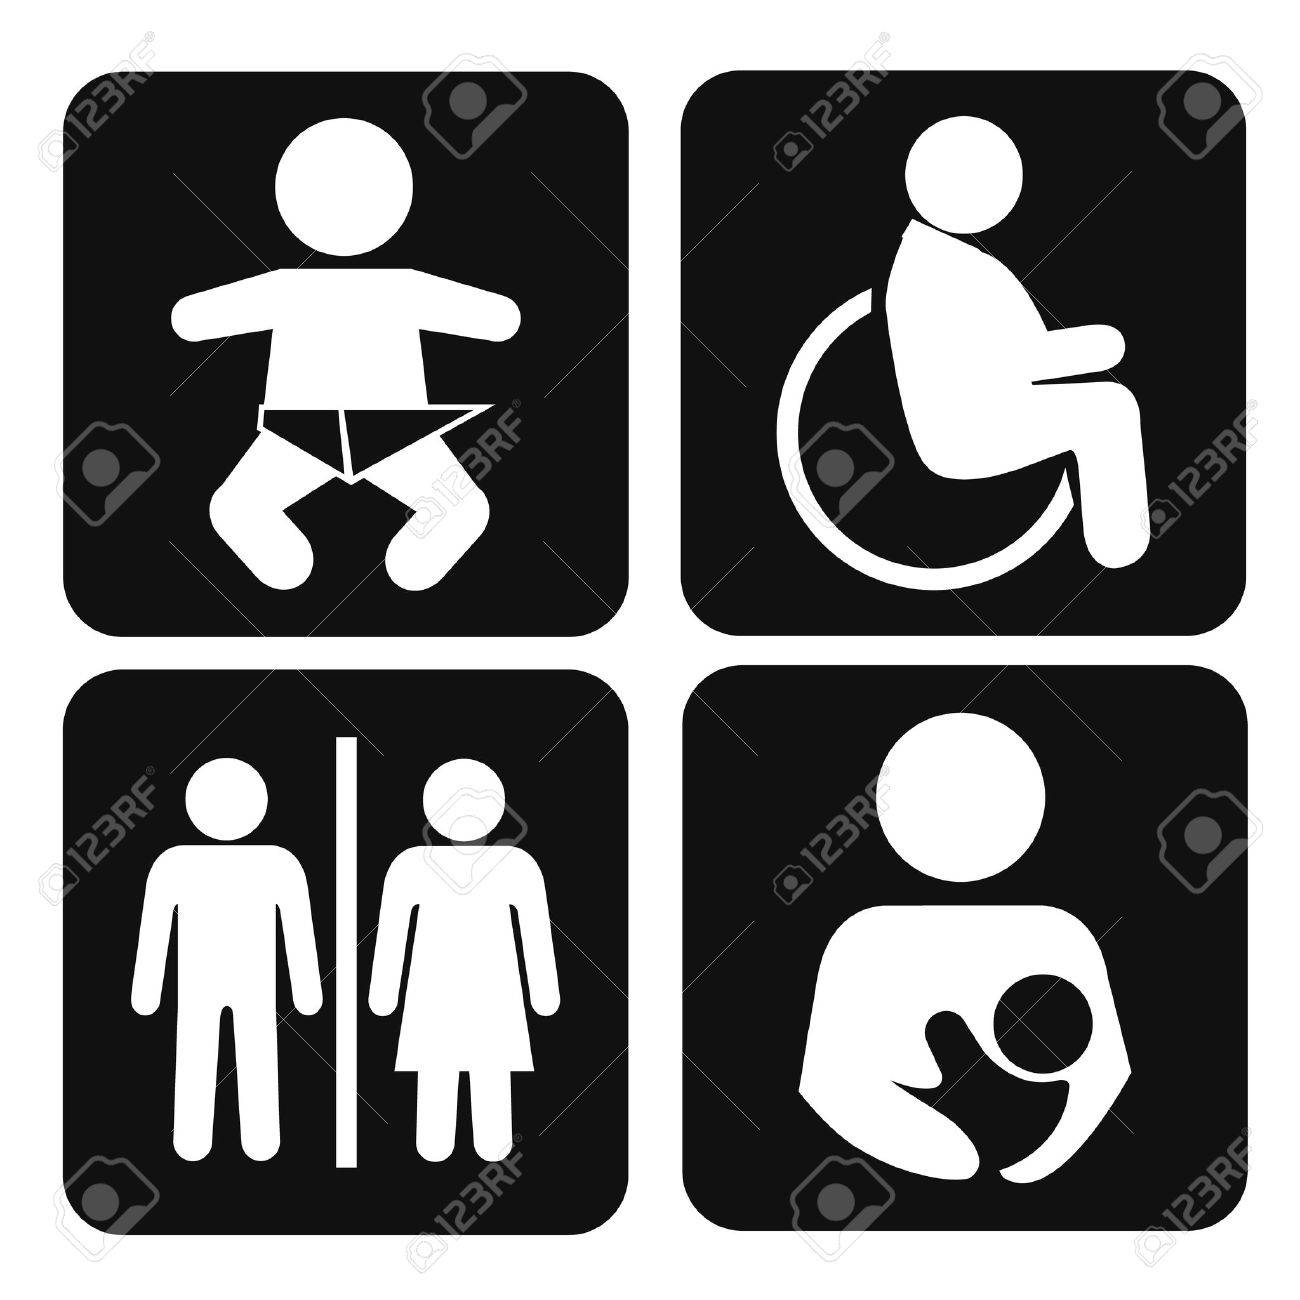 Vector set of international service signs pictogram icon set - 32687439